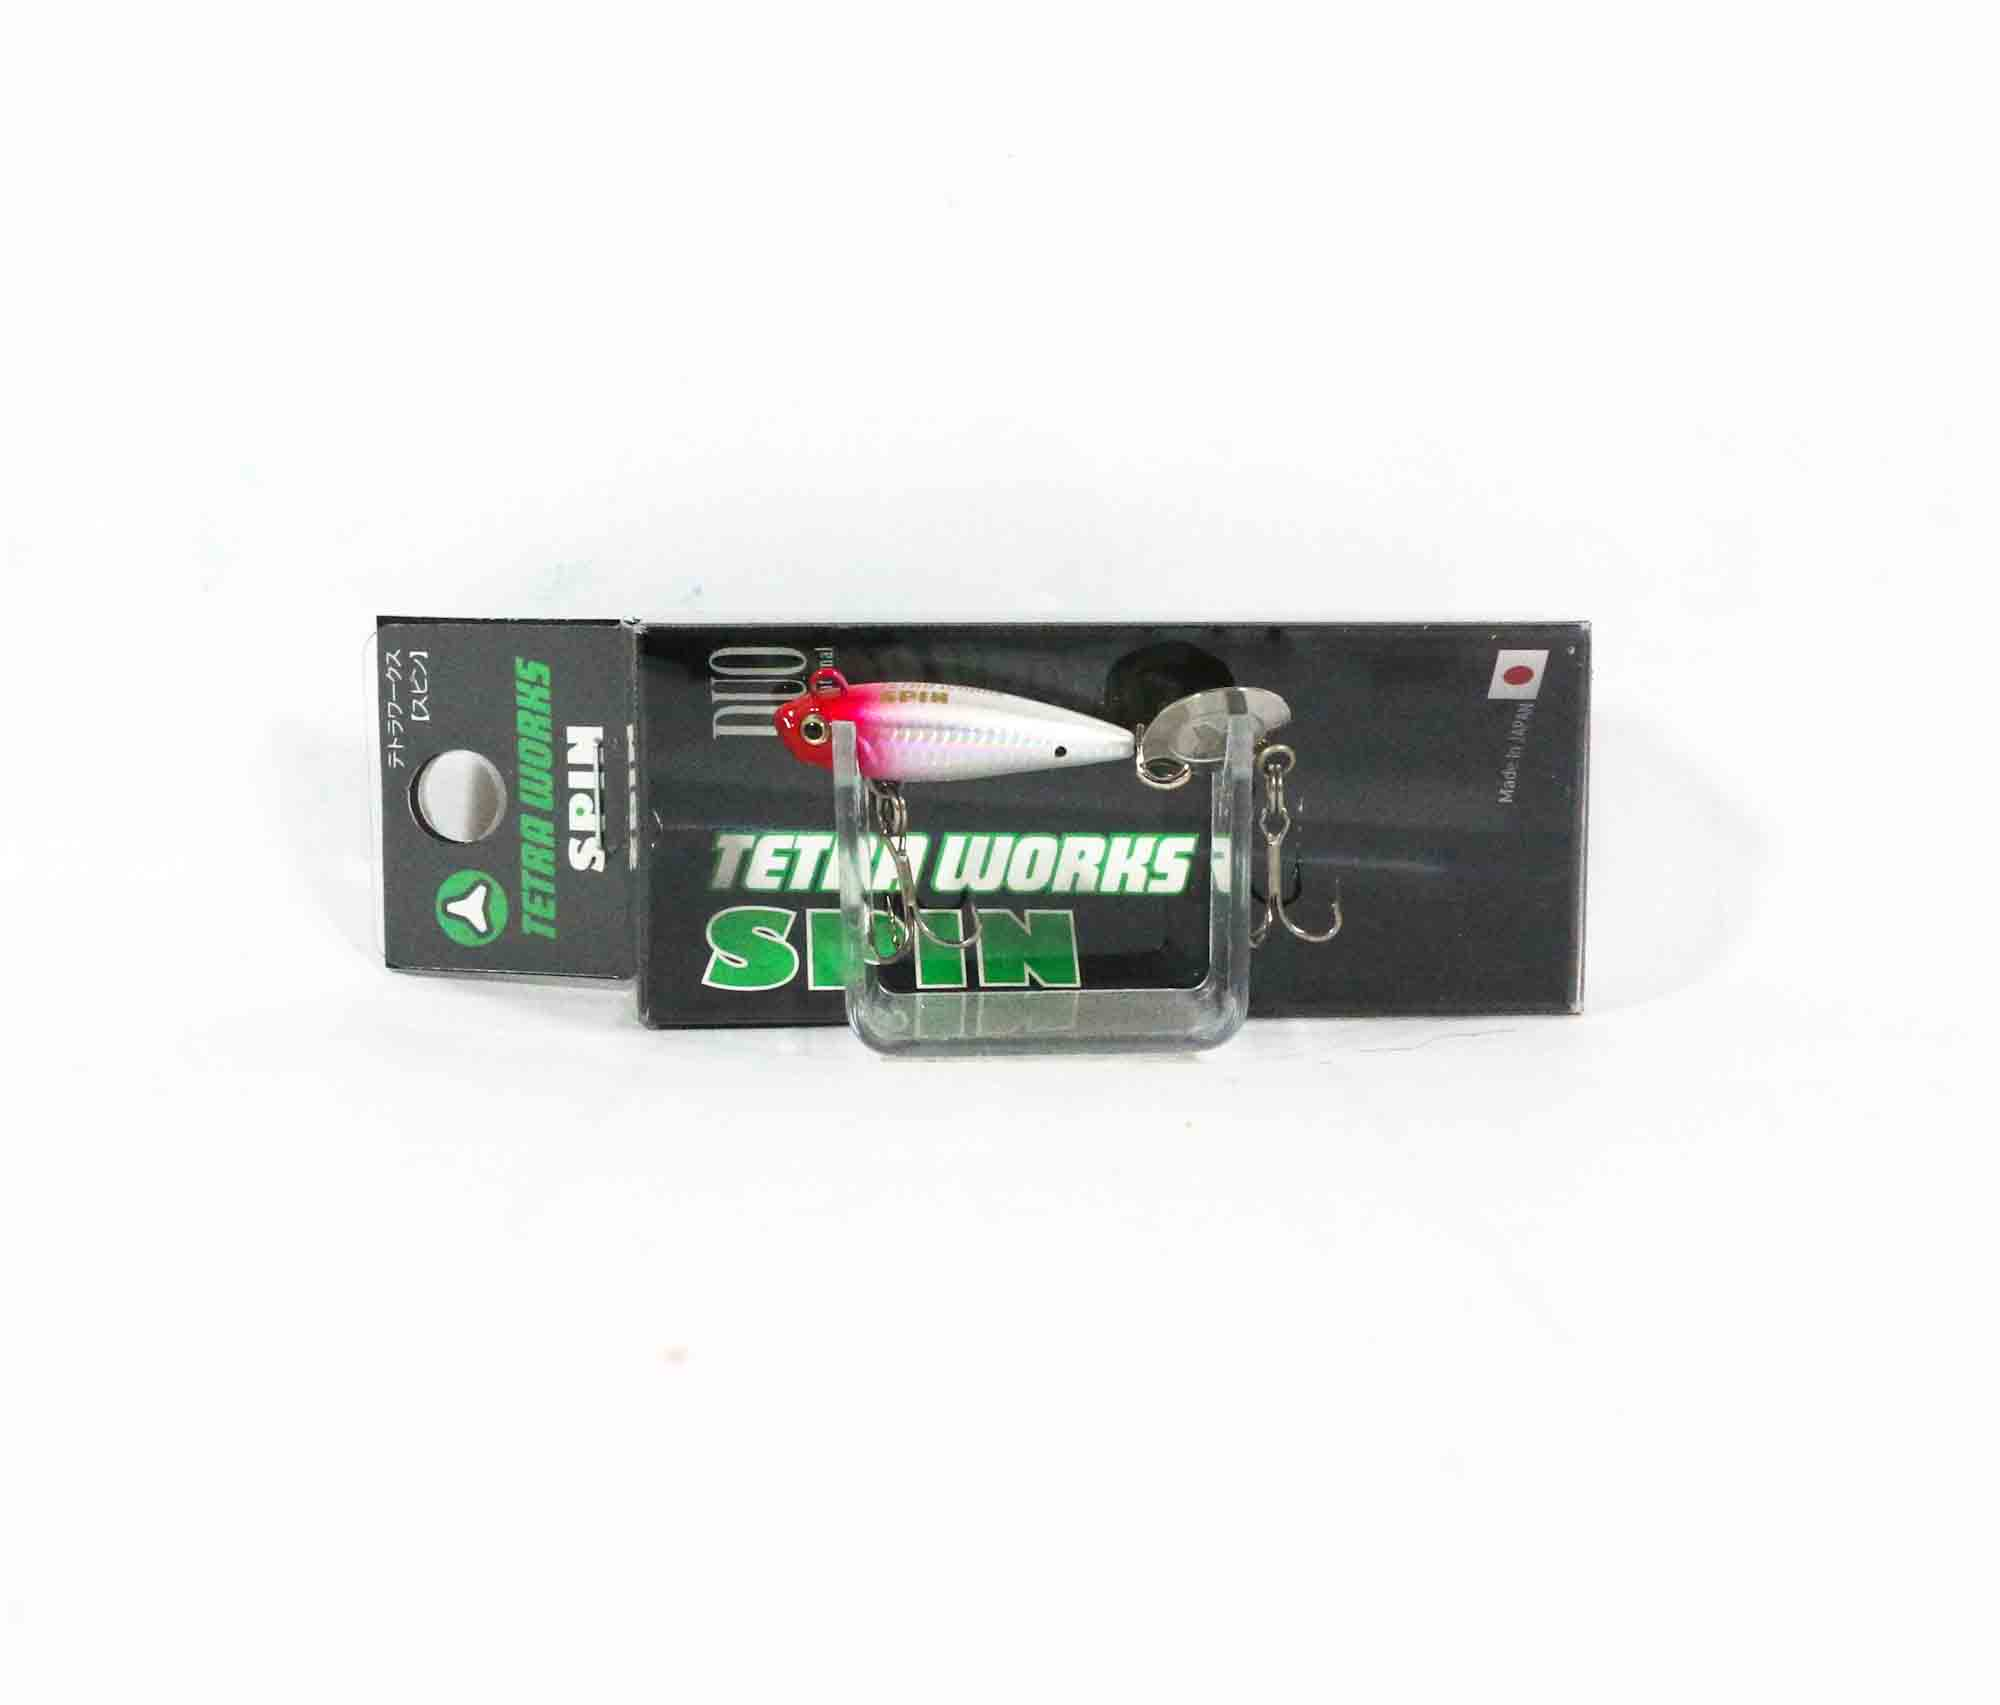 Duo Tetra Works Spin 28 mm 5 grams Sinking Lure SMA0514 (2148)